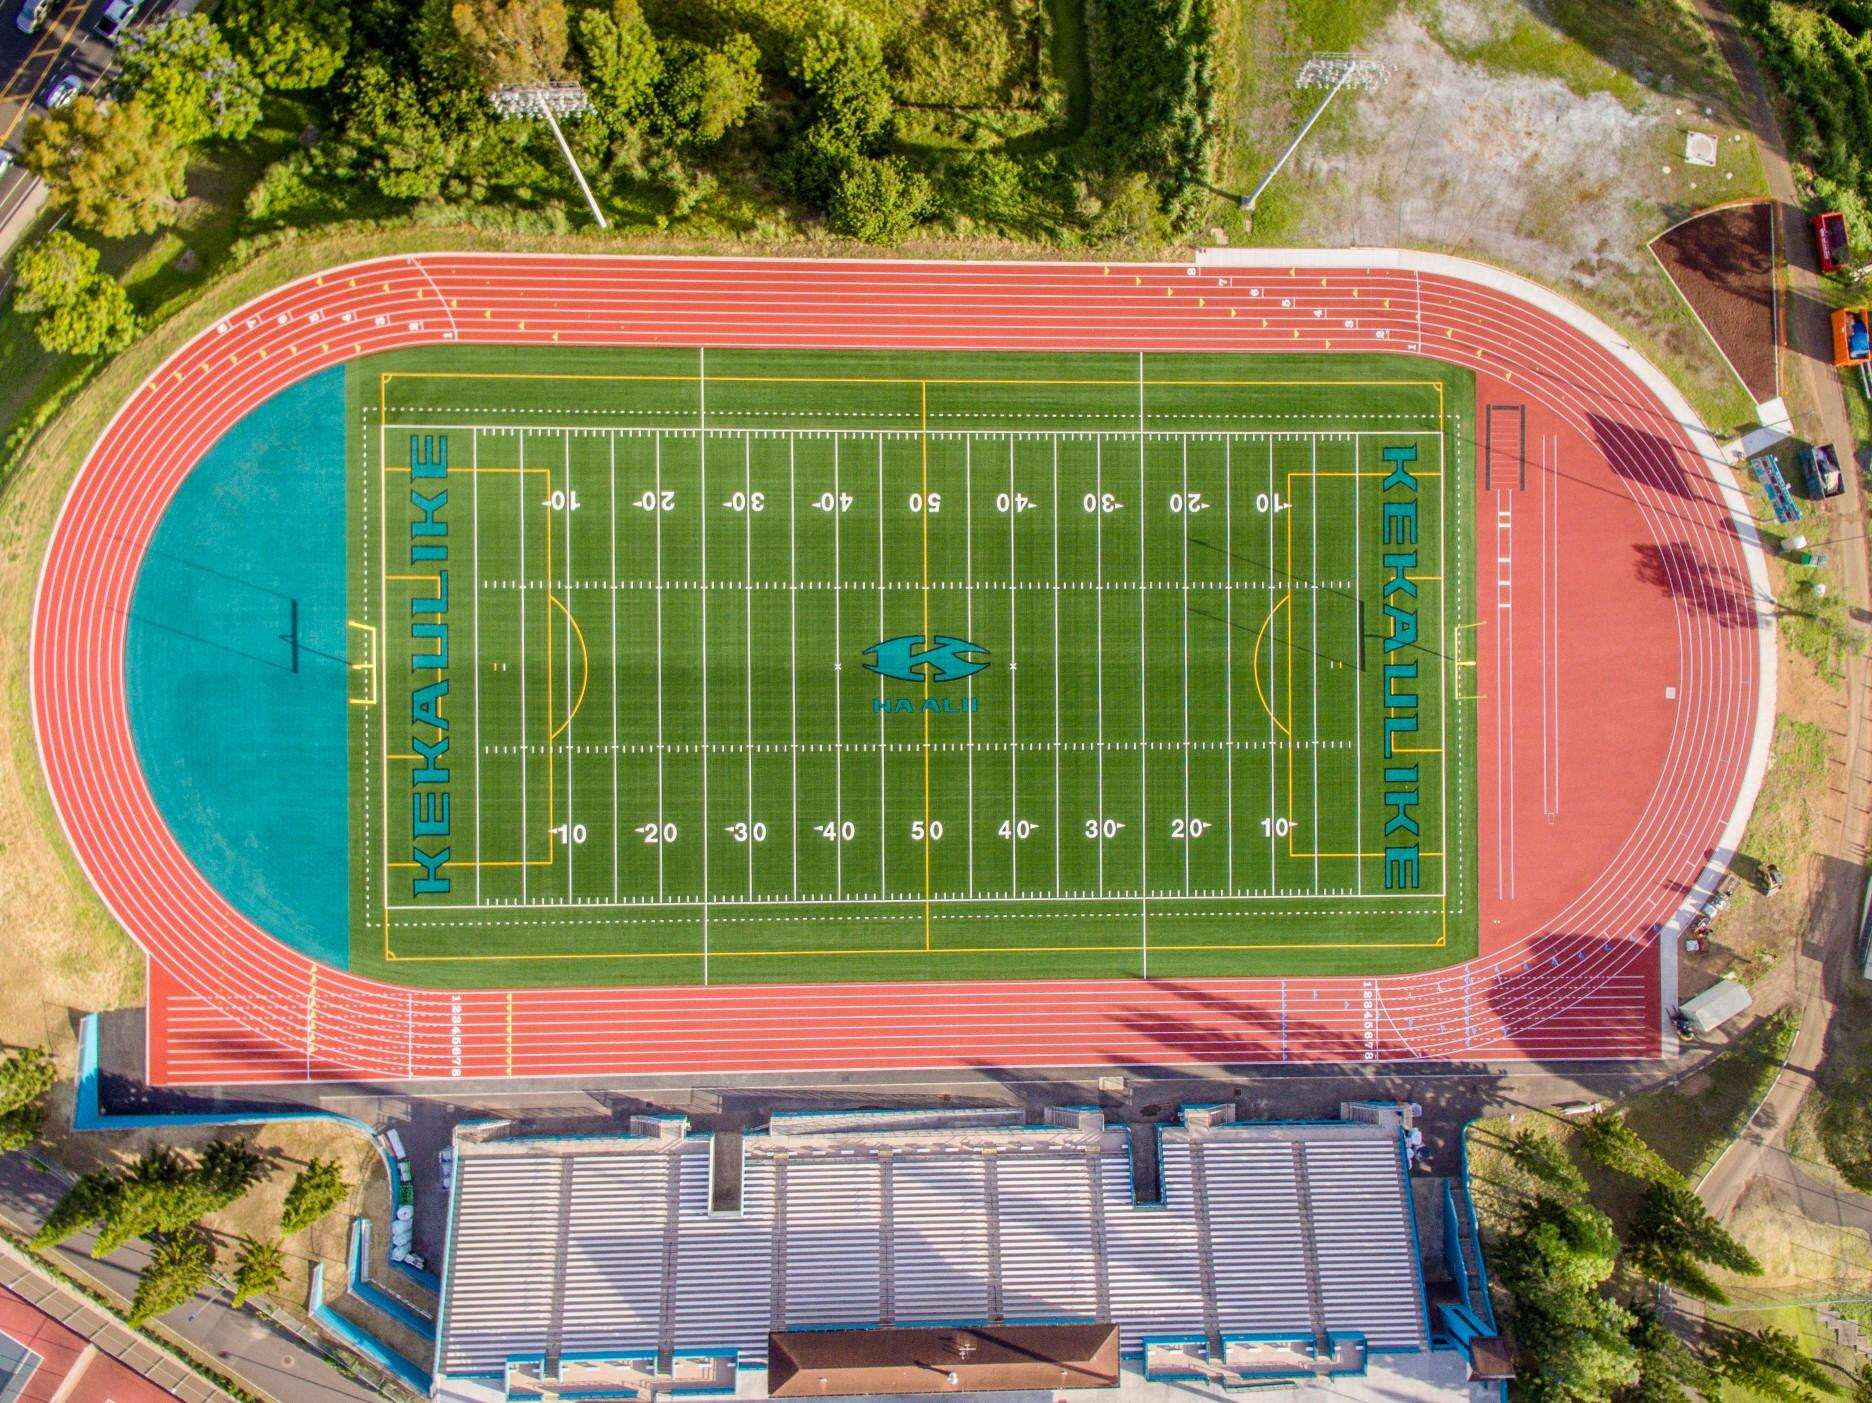 King Kekaulike High School - Synthetic Turf & Track